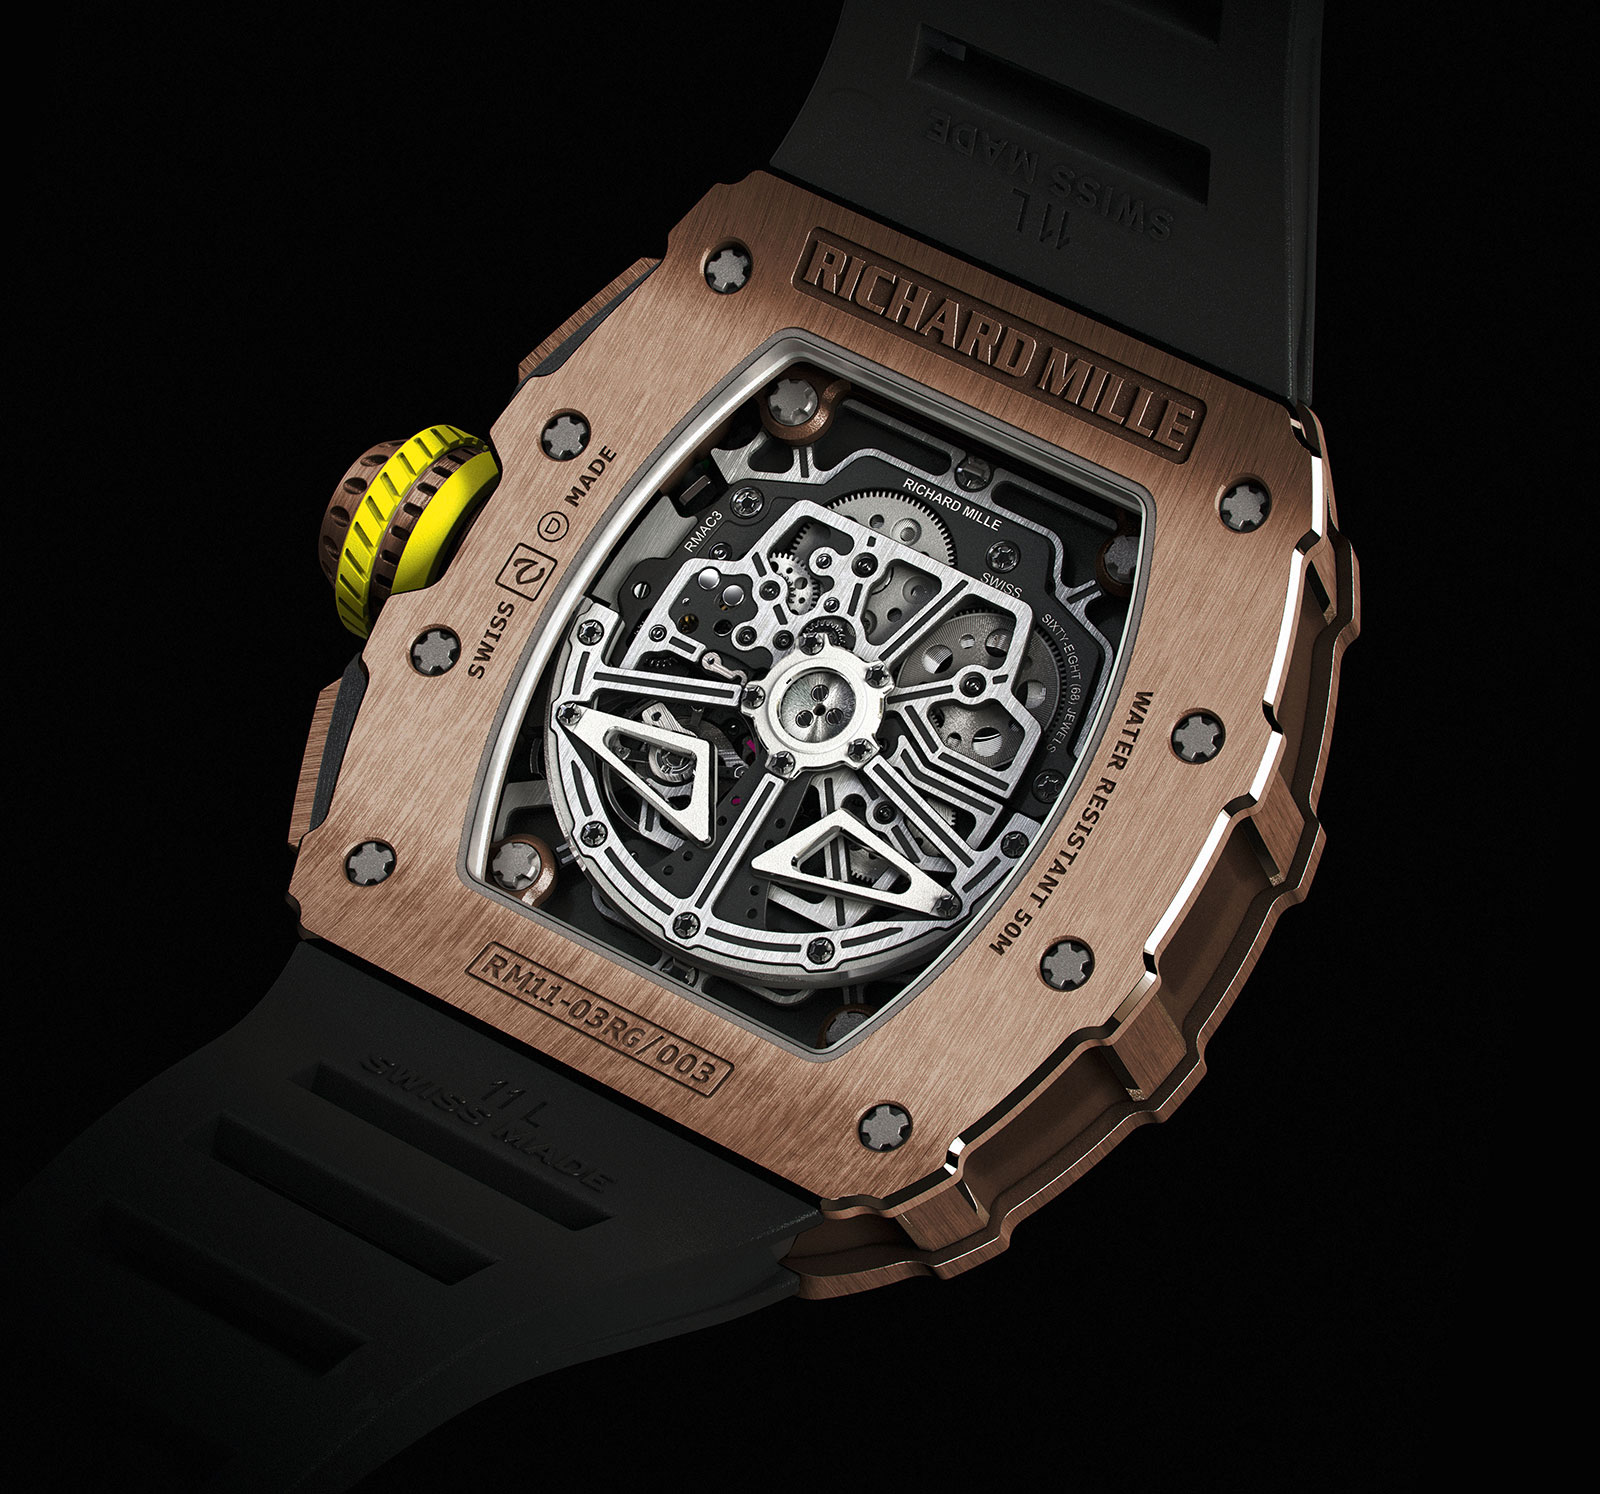 Richard Mille RM 11-03 red gold 2